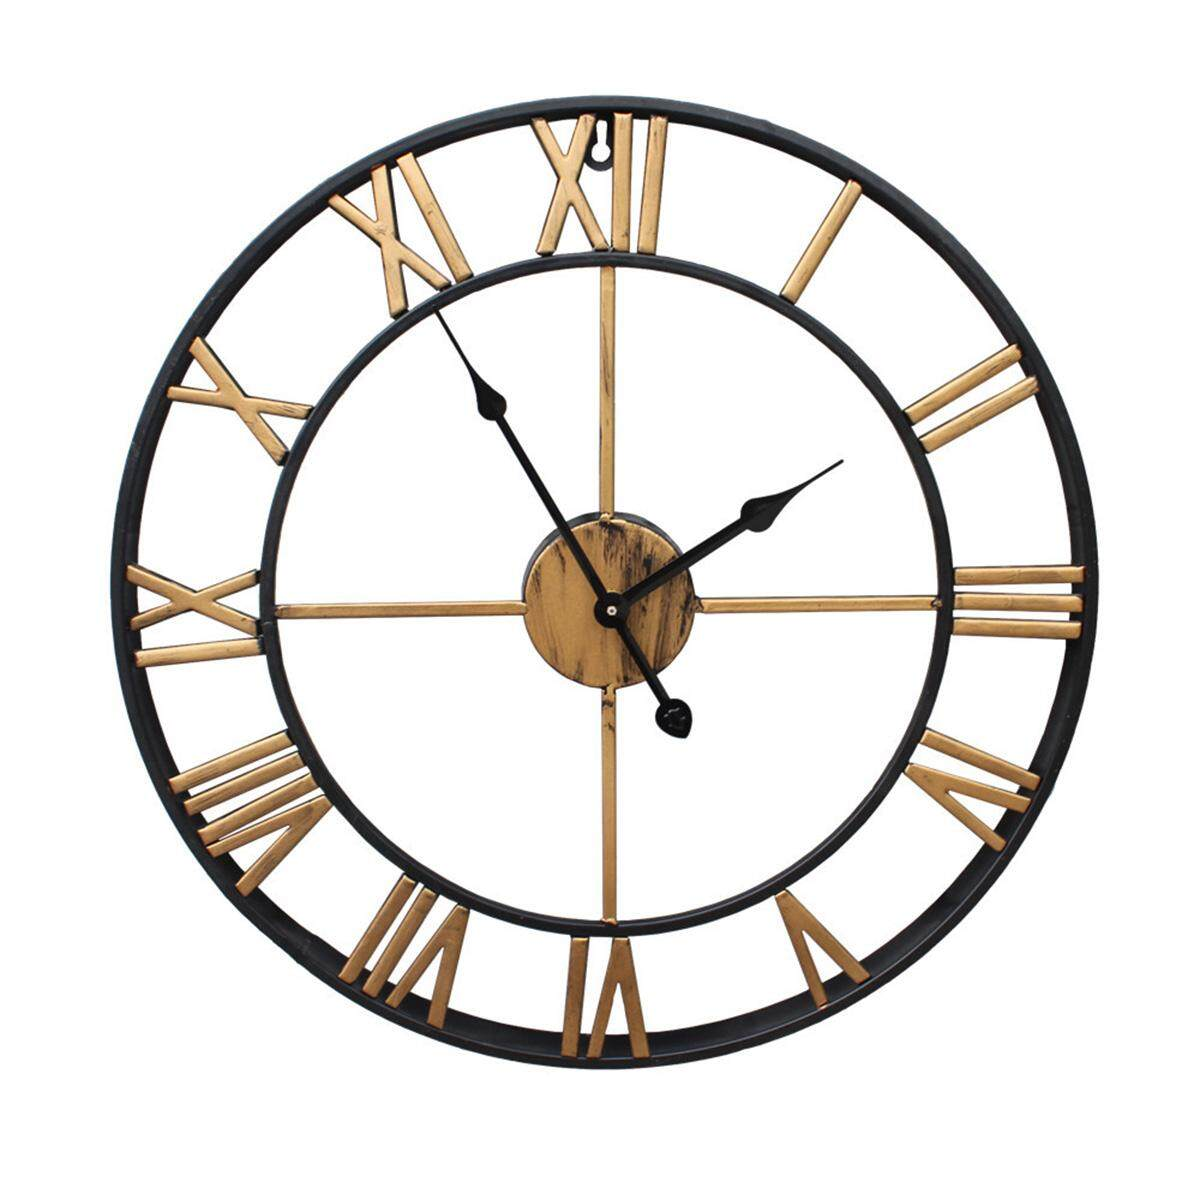 Outdoor Garden Large Wall Clock Big Roman Numerals Giant Open Face Metal Gold - intl